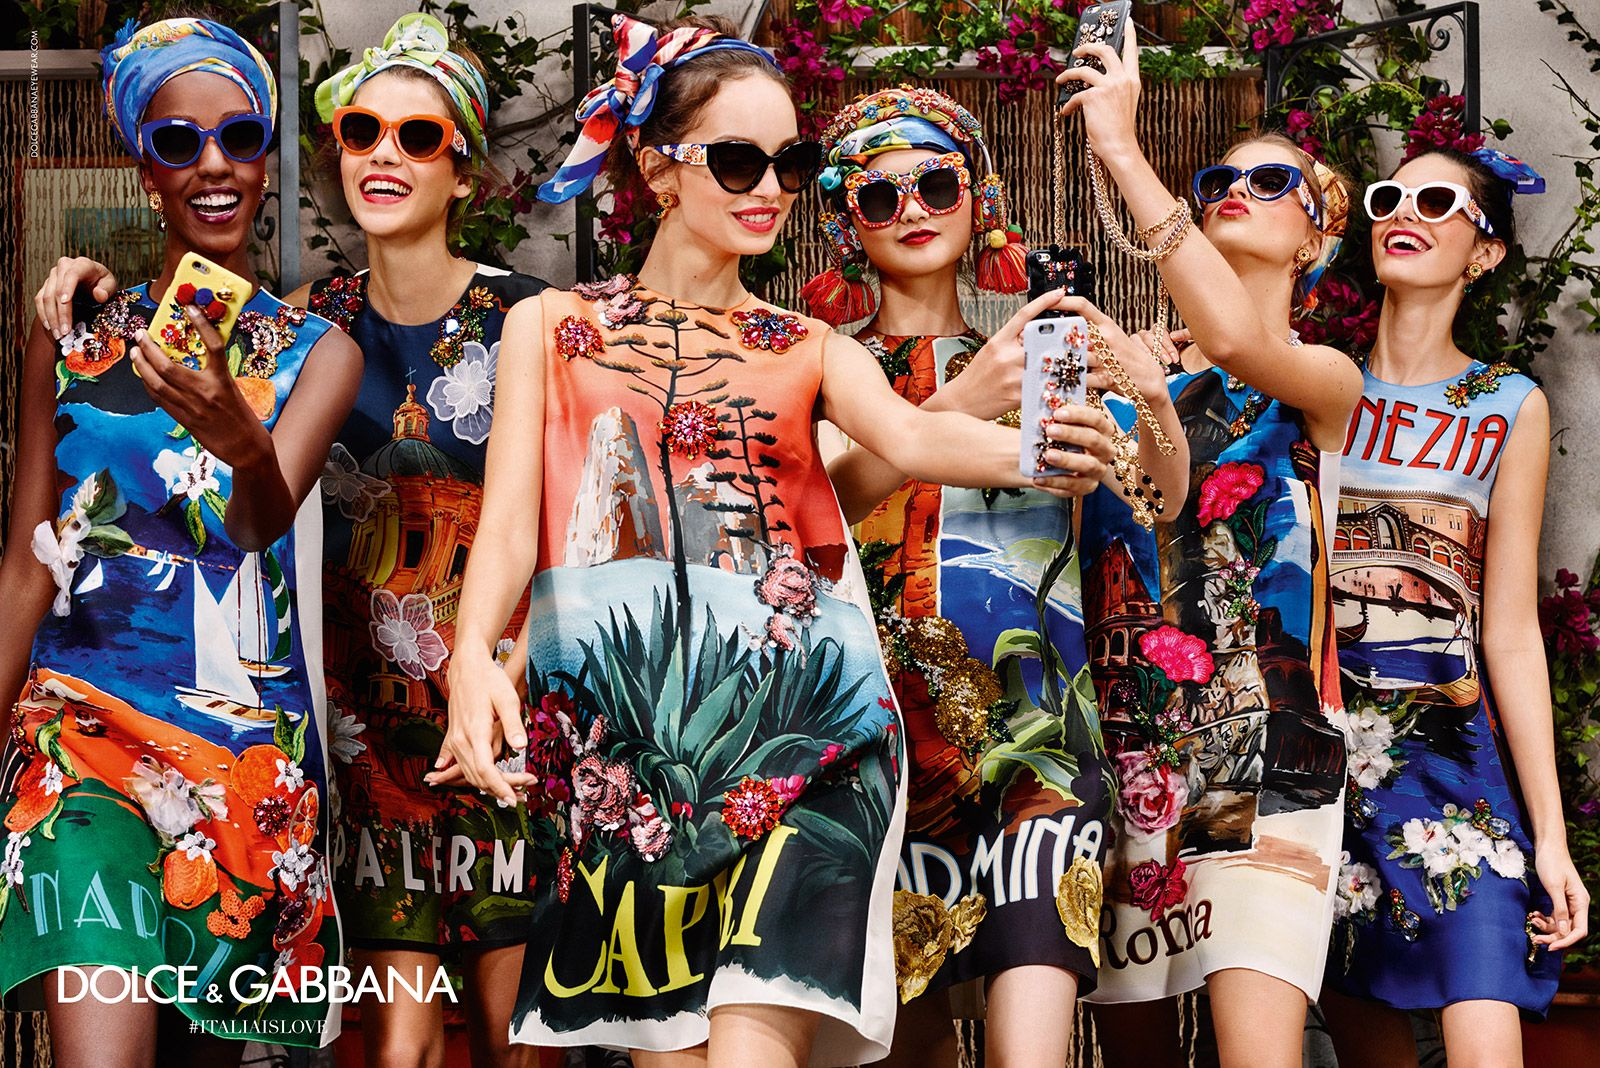 b31548029dcc Get inspired by Dolce & Gabbana Eyewear advertising campaign and choose the  perfect look with Summer 2016 women's sunglasses.